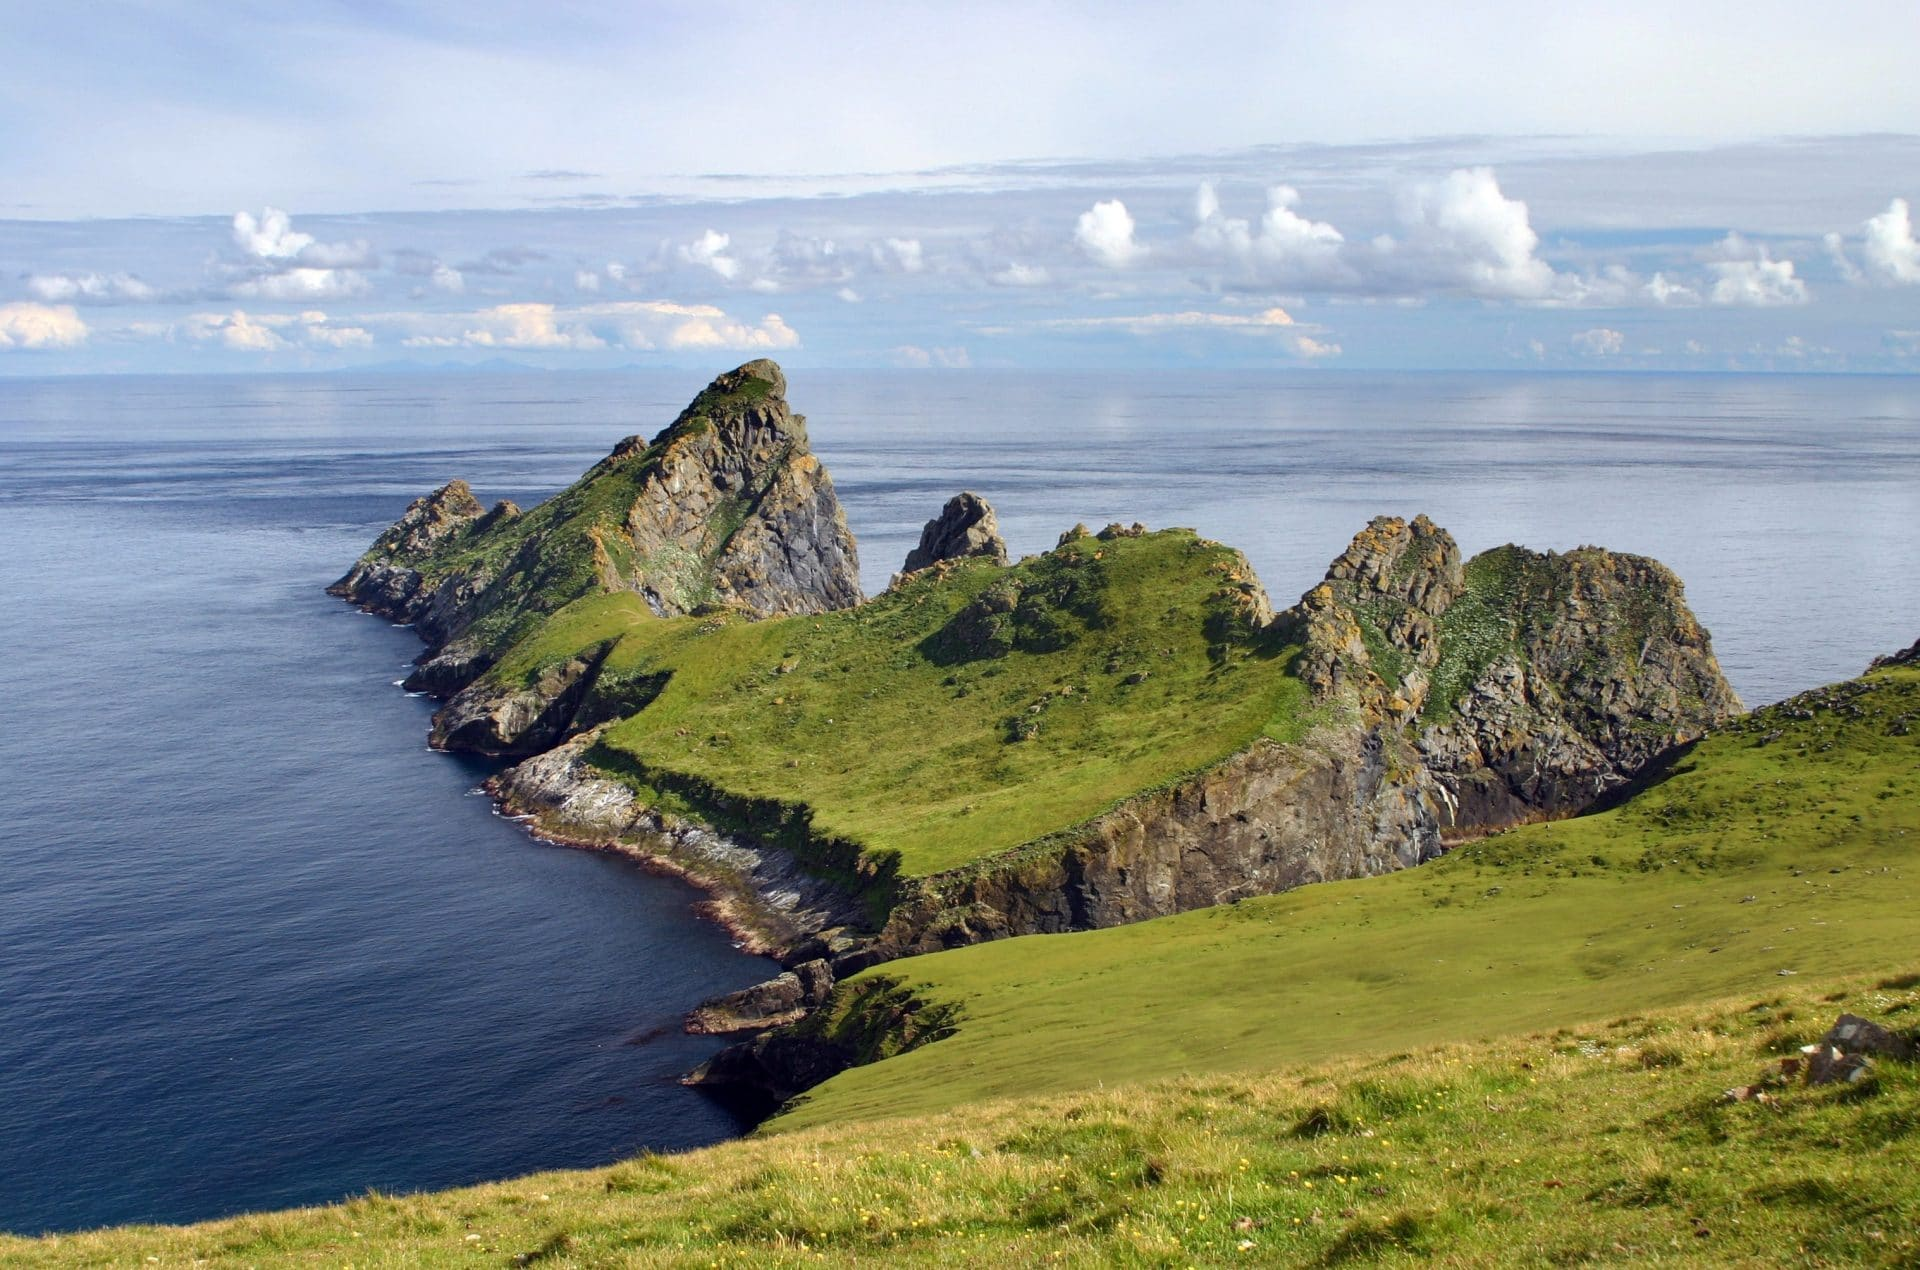 Hirta and dun at St. Kilda